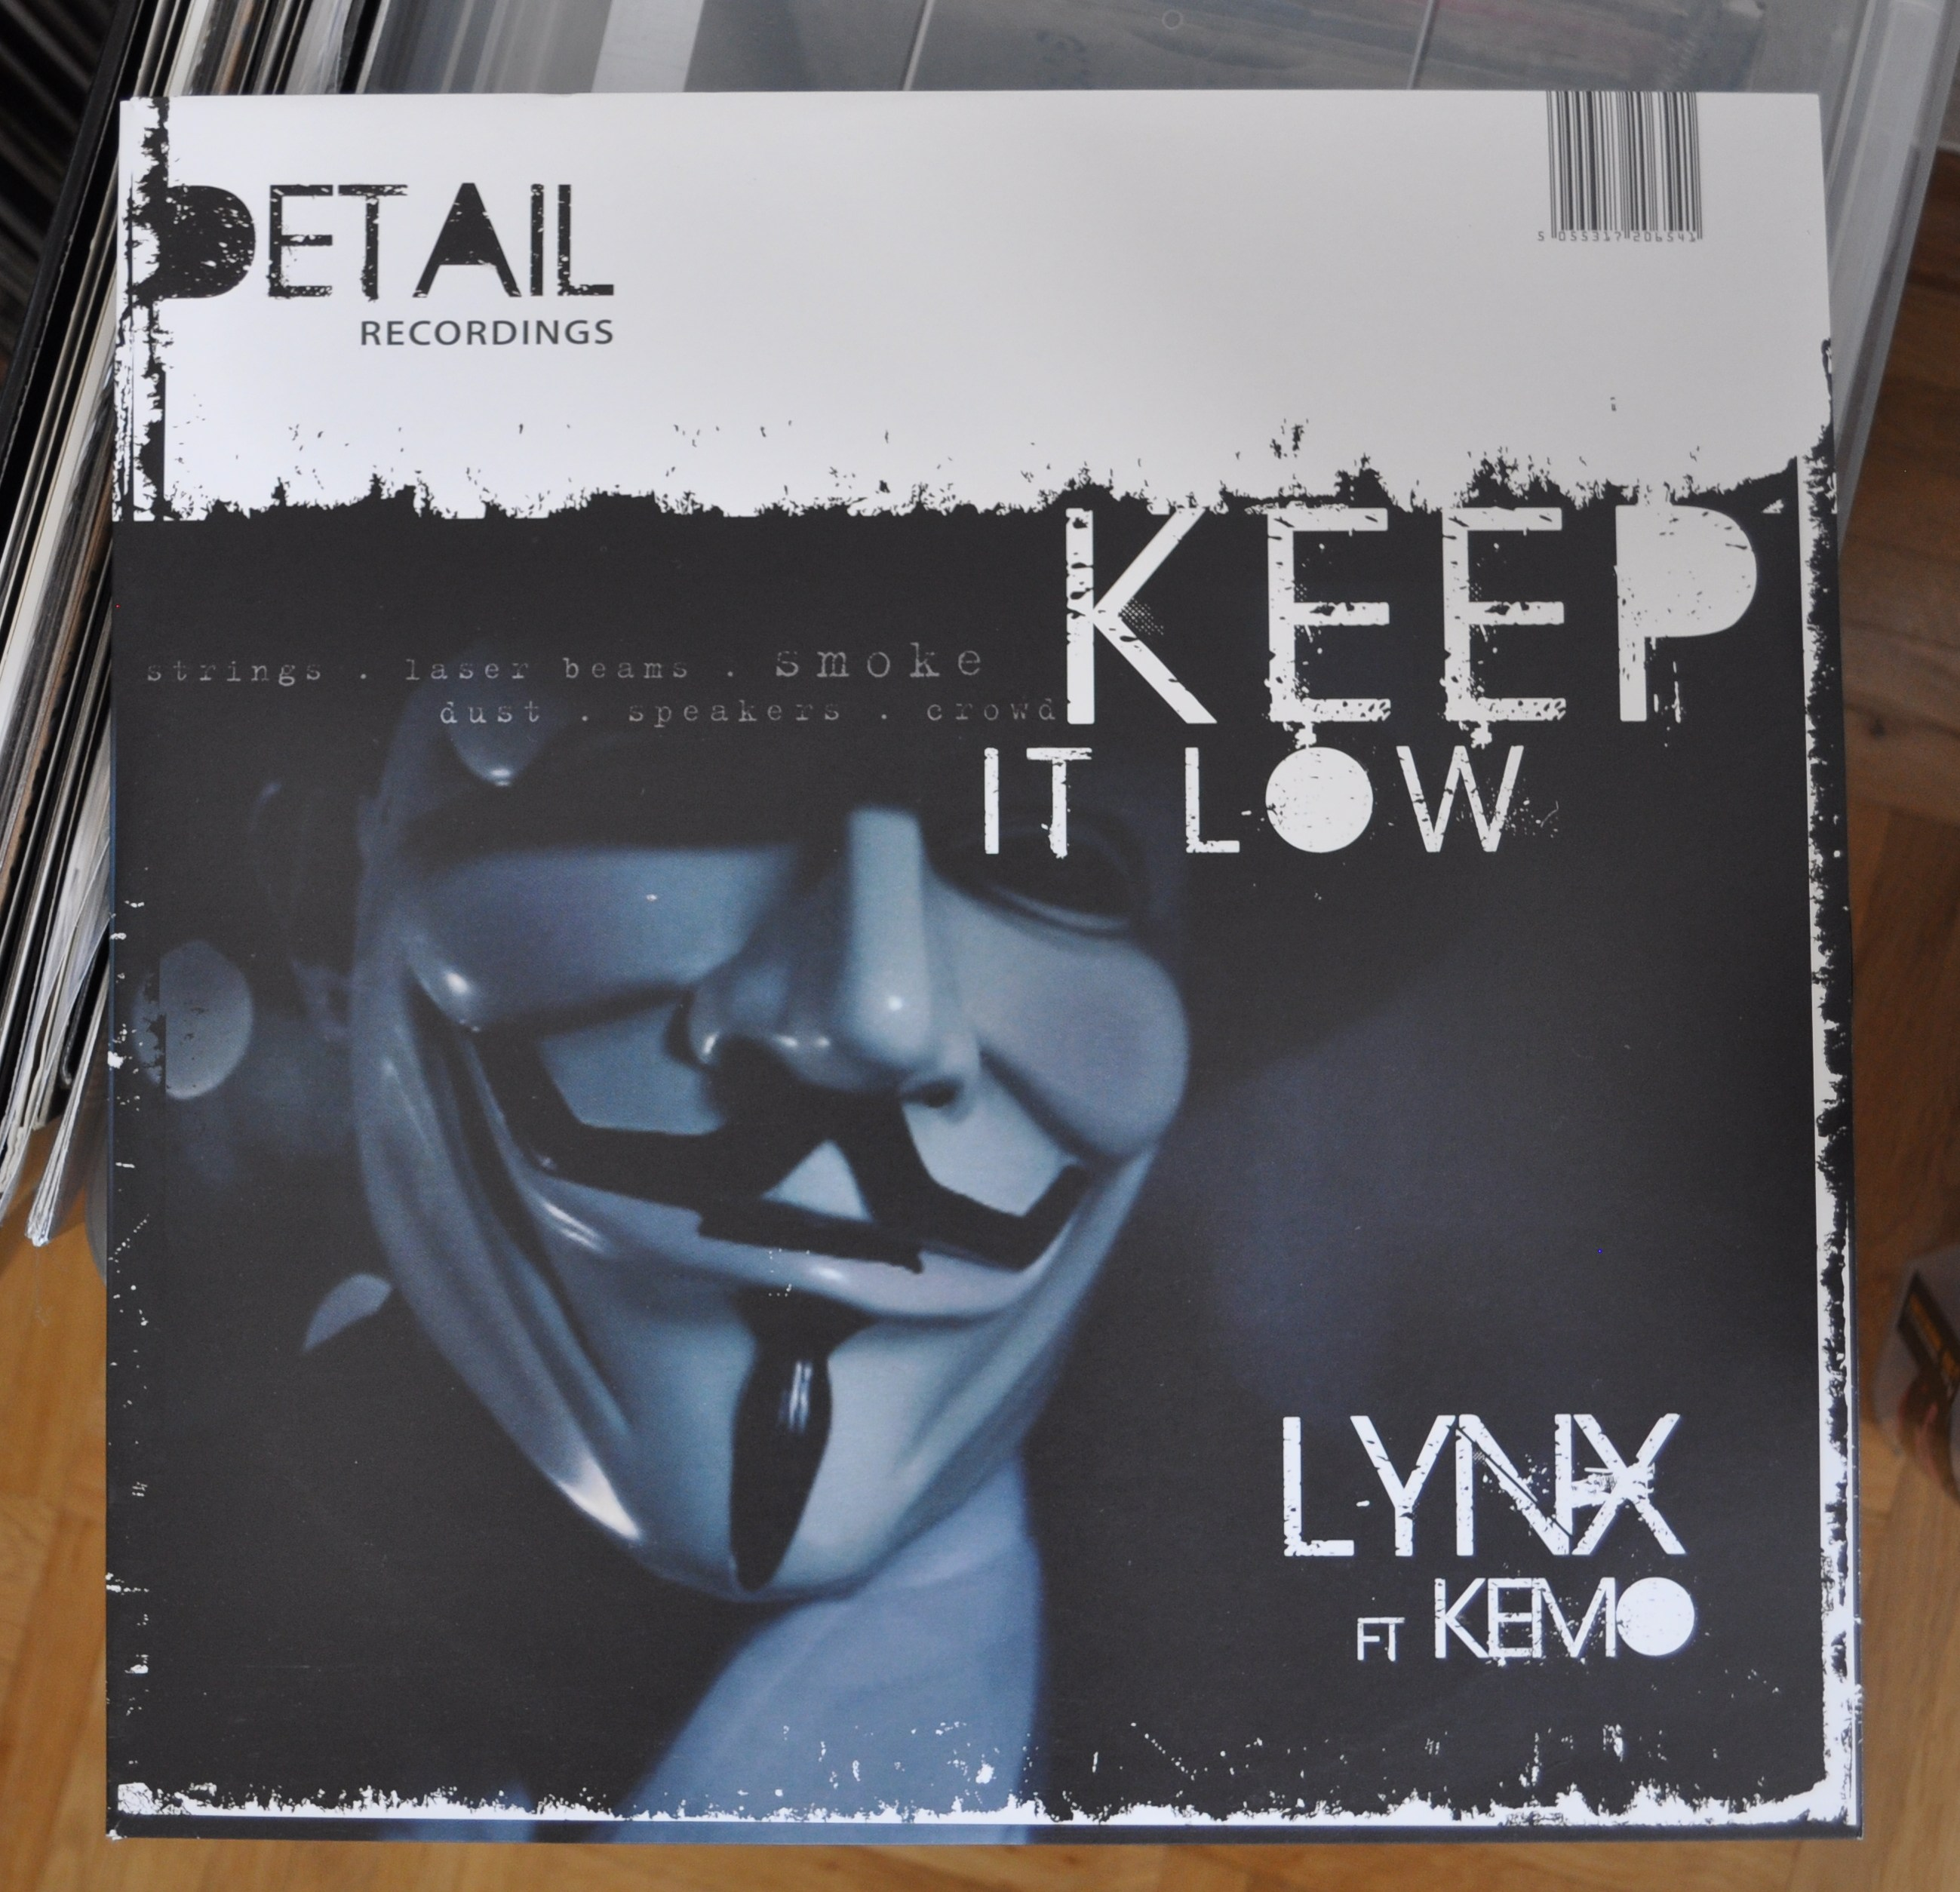 Lynx Featuring Kemo - Carnivale / Reverse Engineering